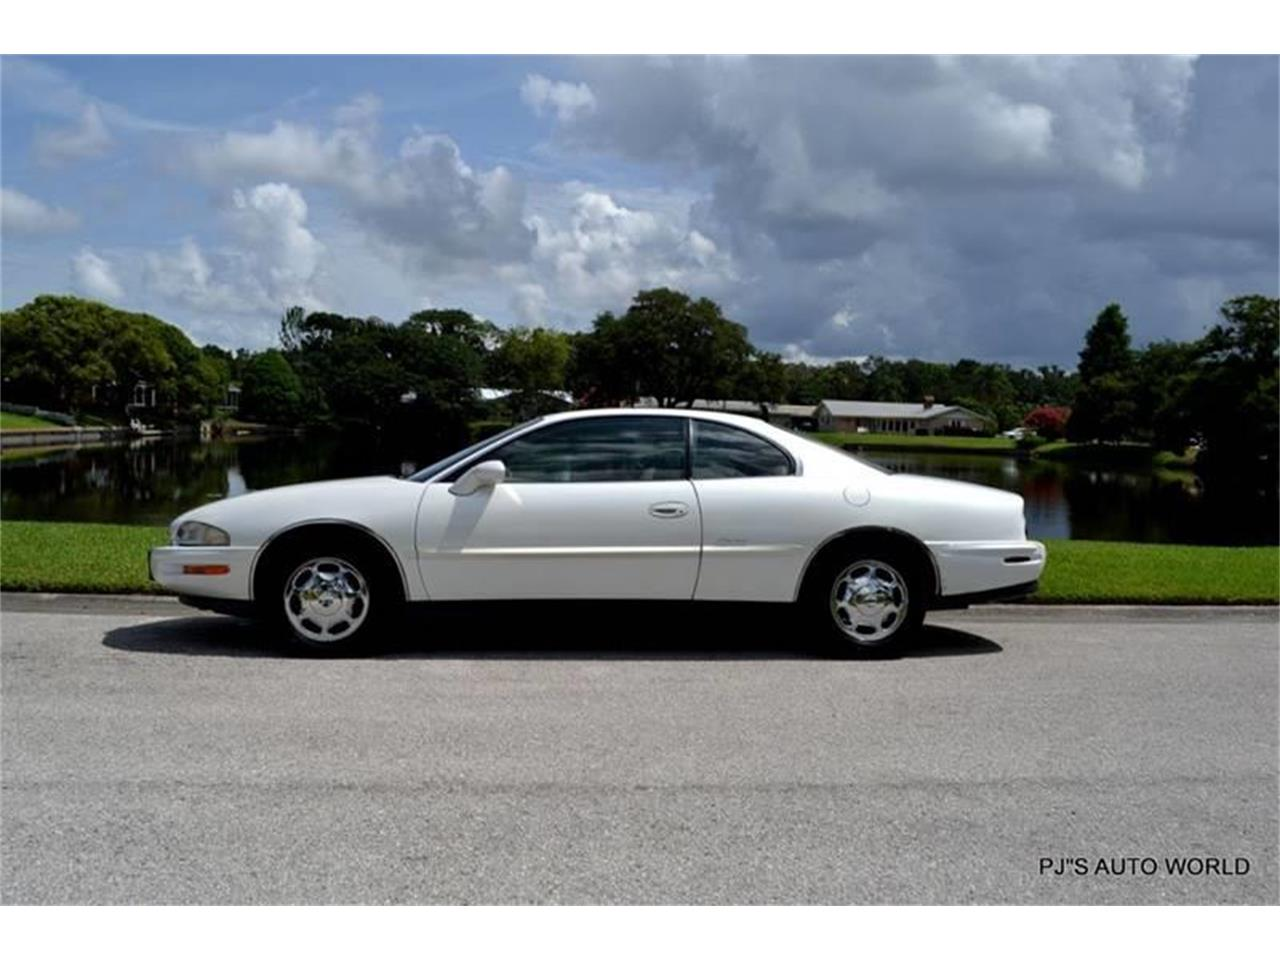 1999 buick riviera for sale in clearwater fl classiccarsbay com 1999 buick riviera for sale in